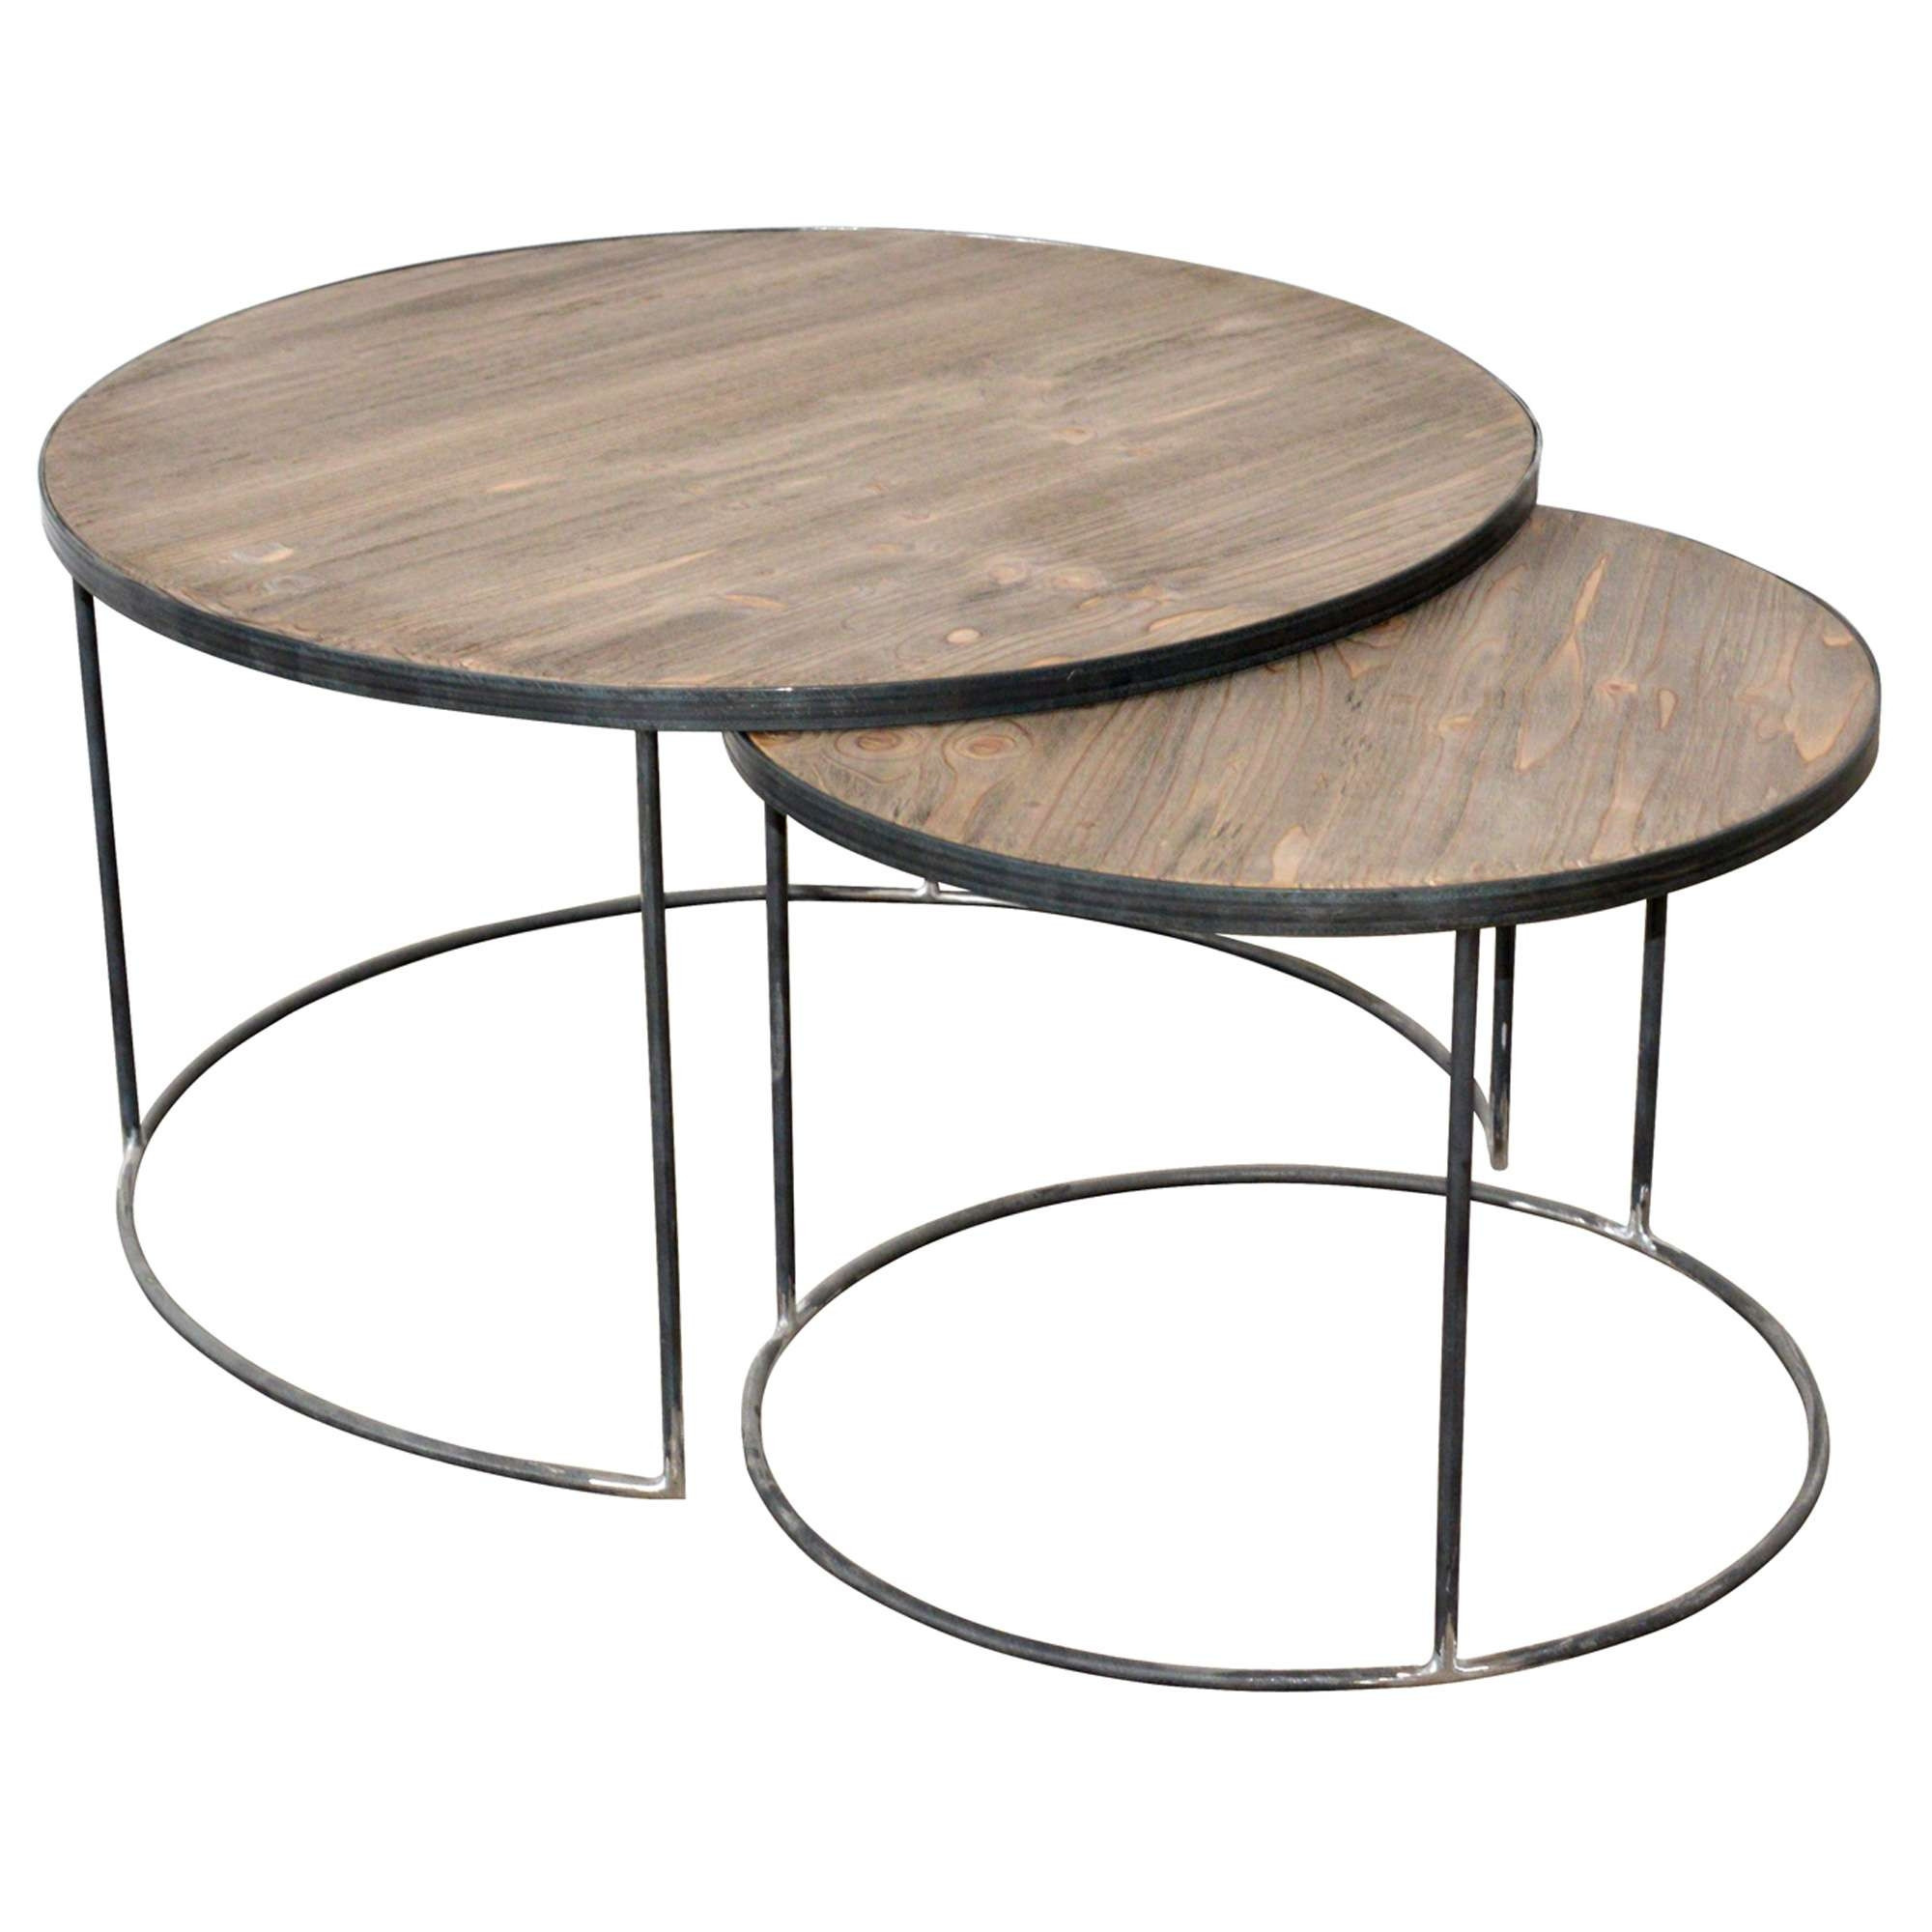 Most Current Round Coffee Tables Within Good Round Coffee Table Set 55 In Home Decoration Ideas With Round (View 5 of 20)